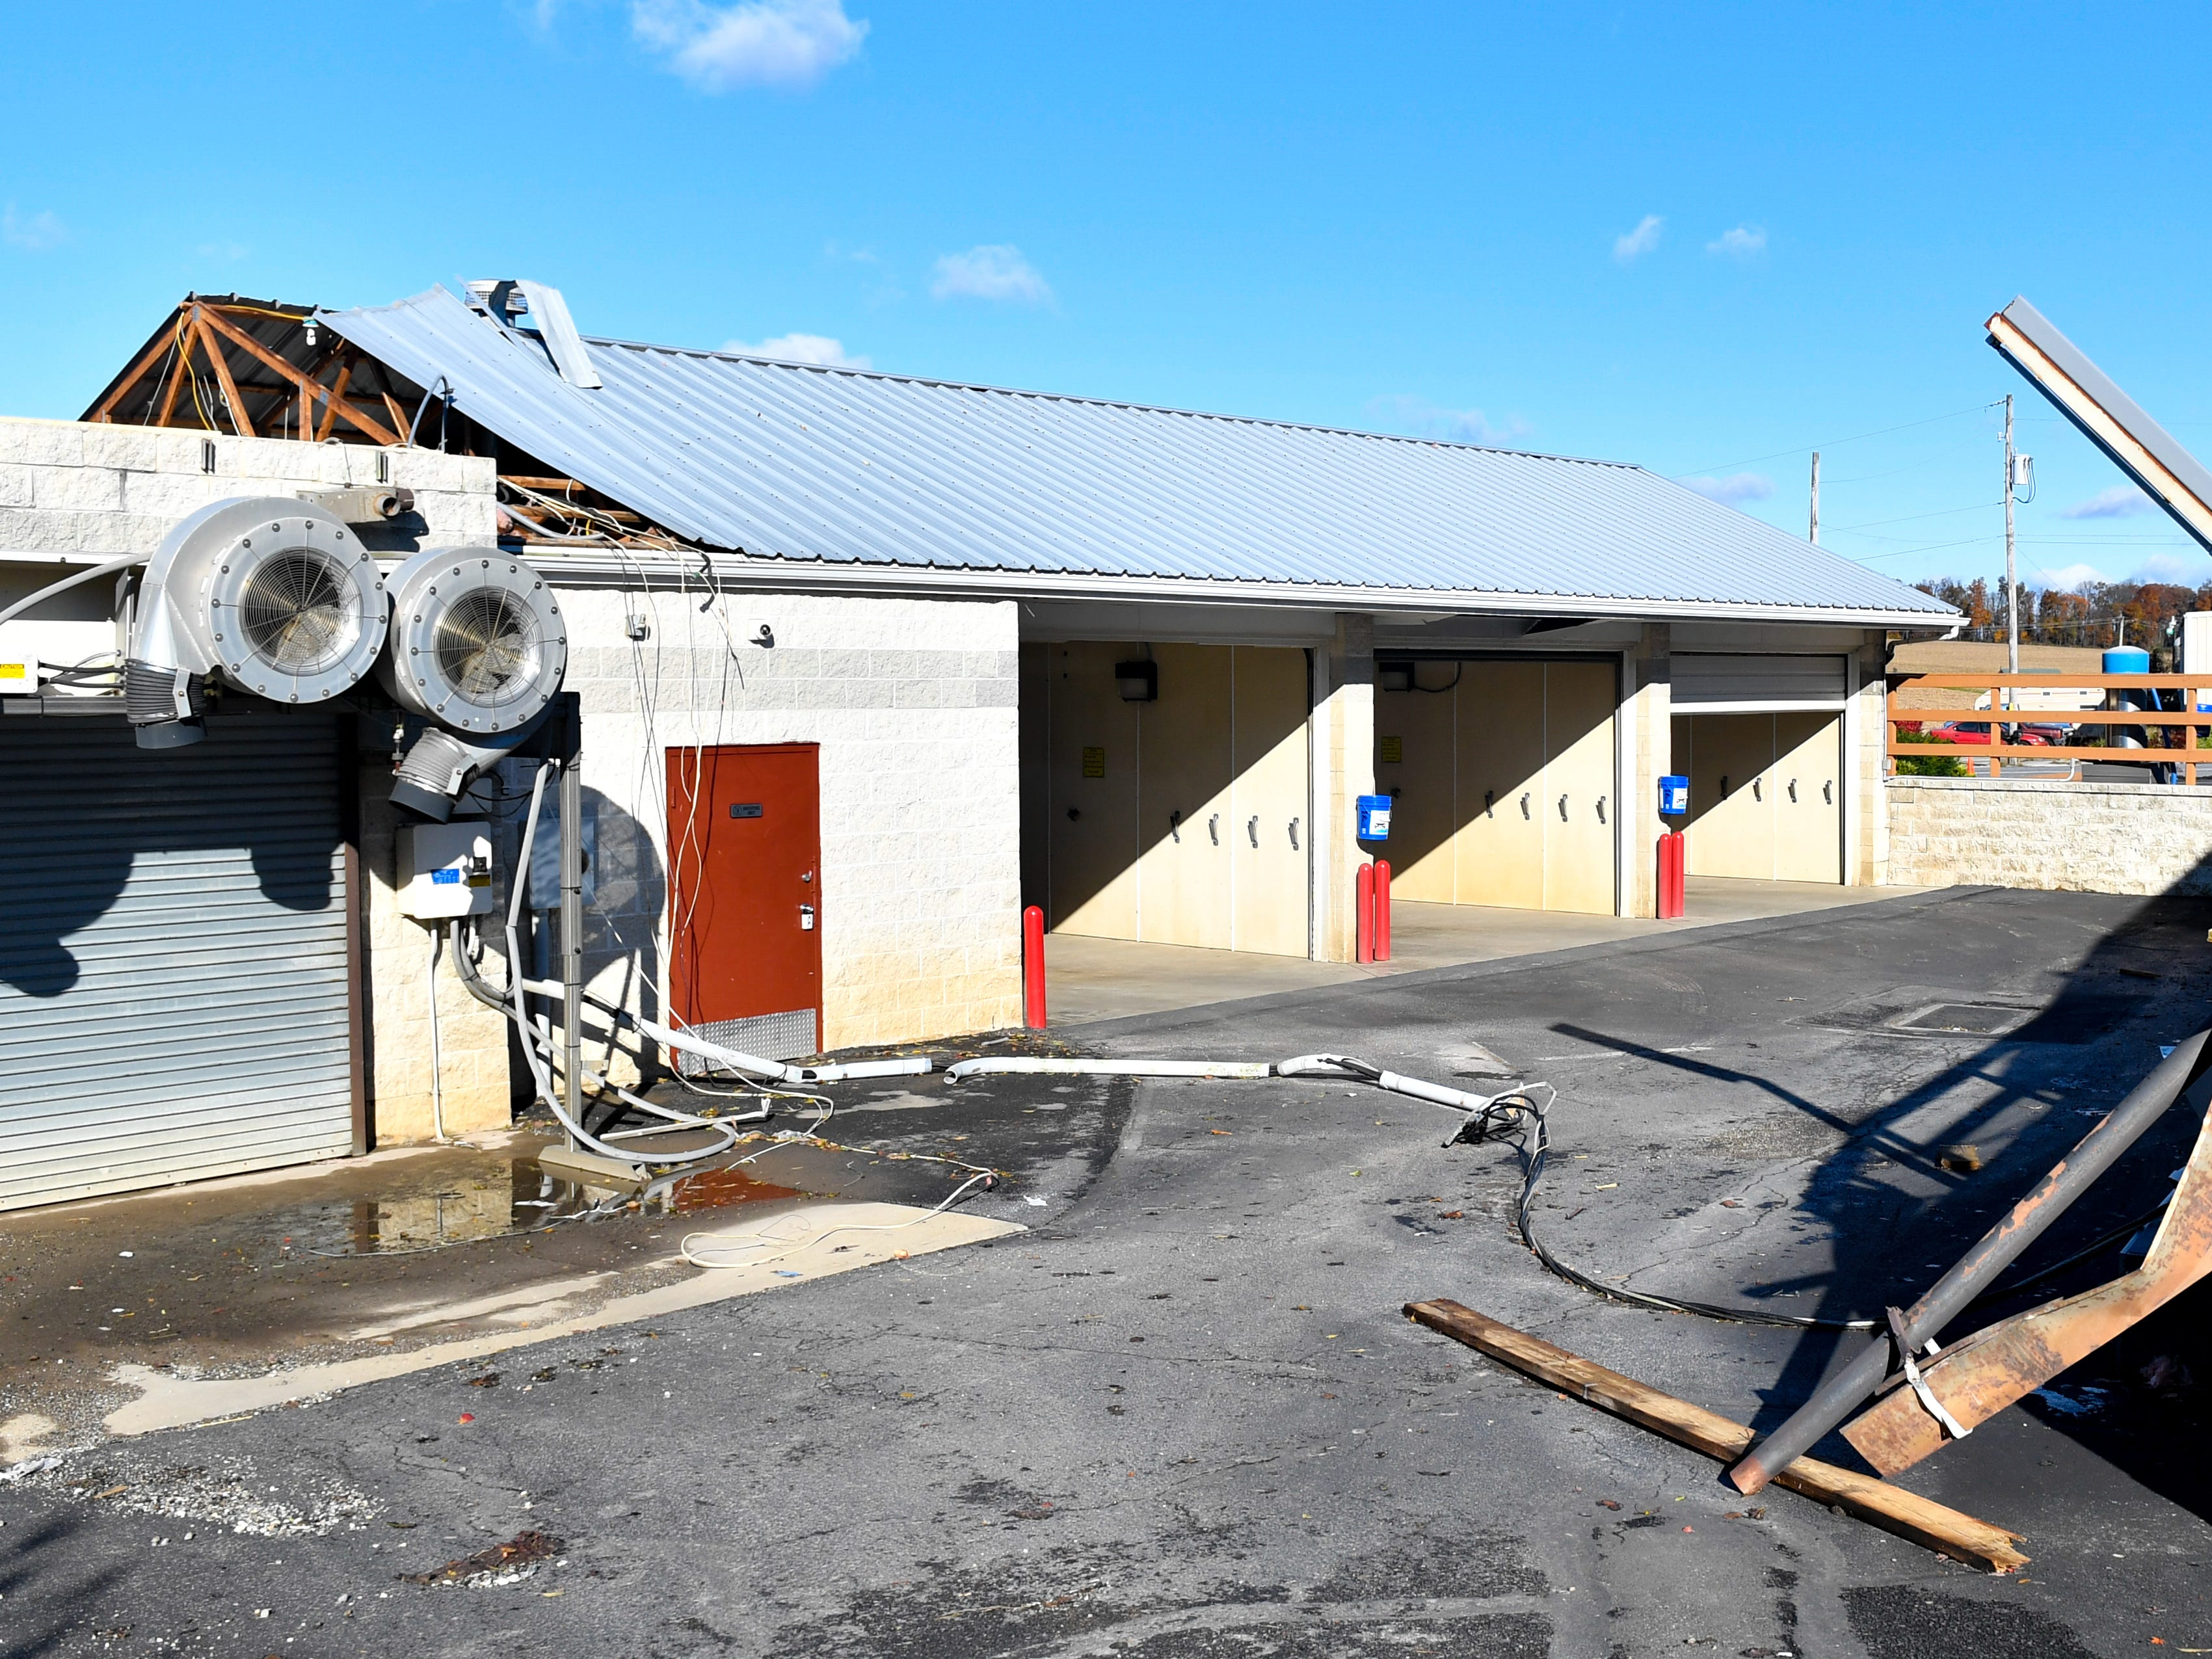 The Cornerstone Car Wash and Laundromat also took some damage. Exposed wires lay on the ground, November 3, 2018.